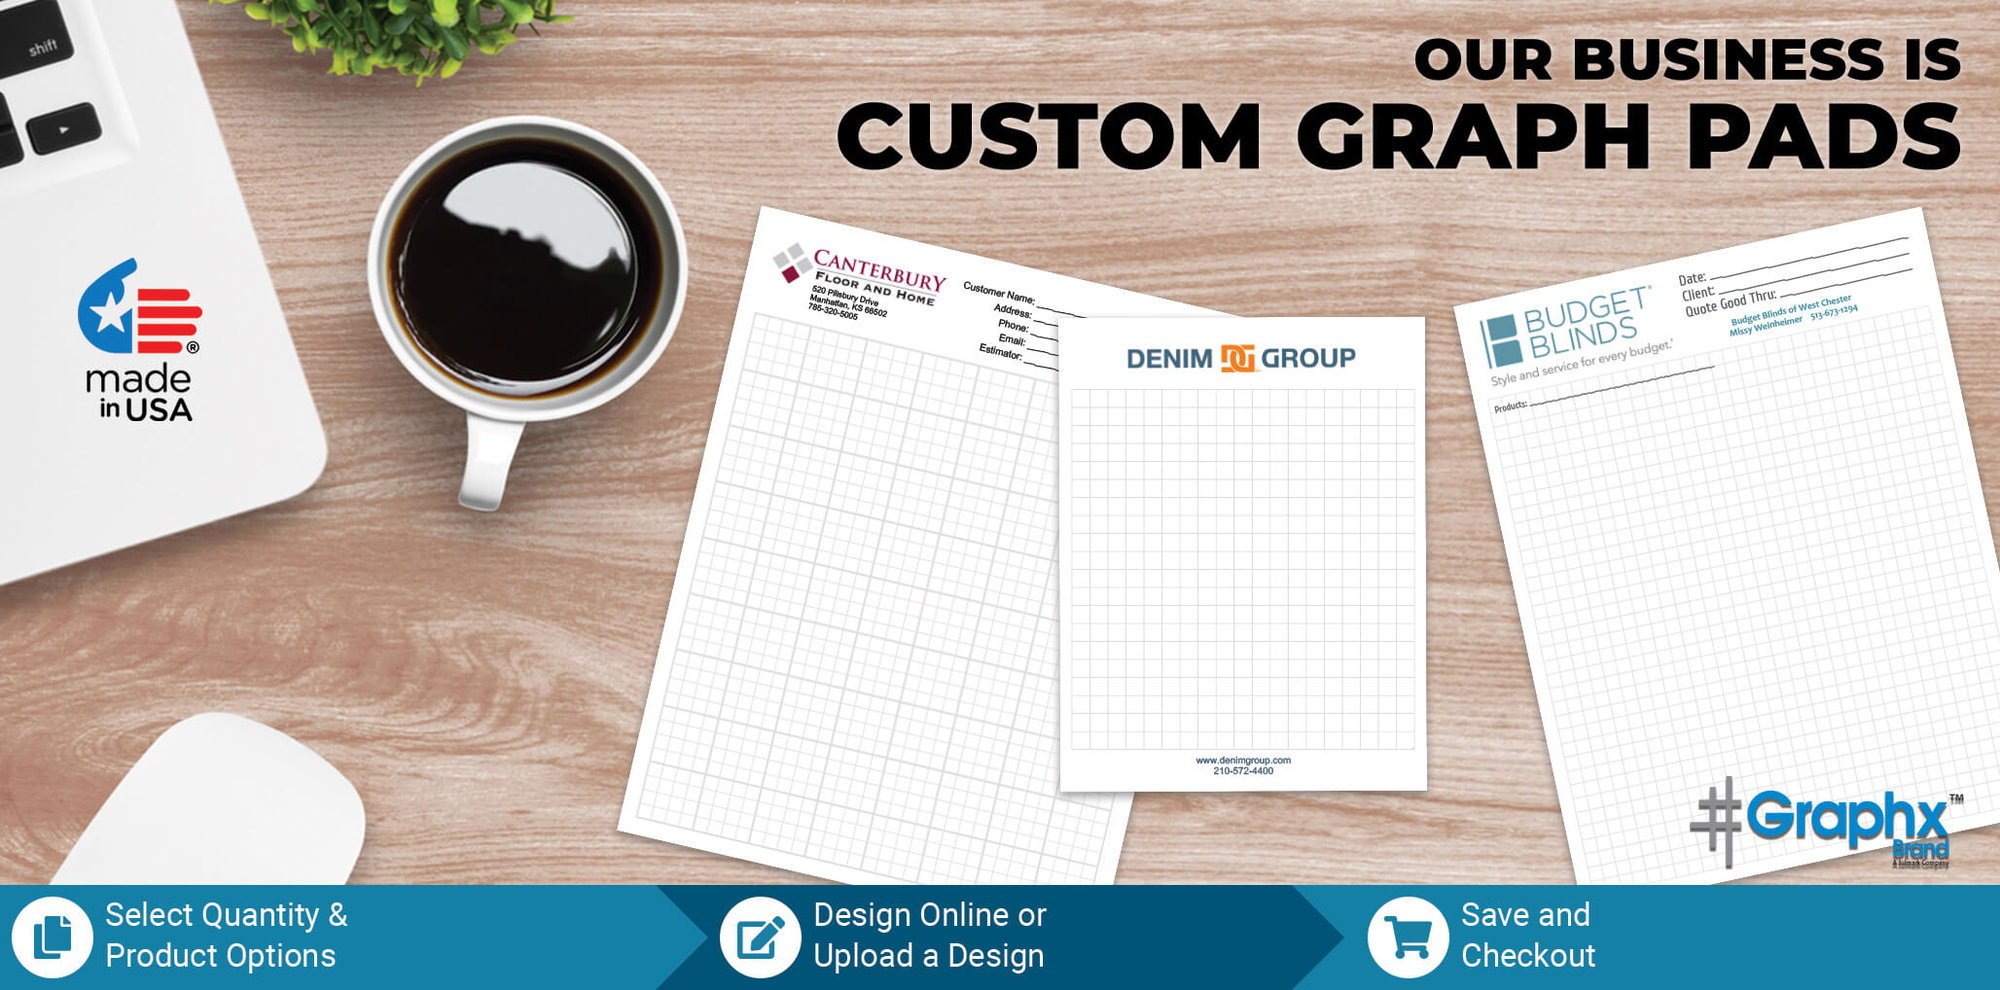 https://printpps.com/images/products_gallery_images/Graph-Pads_Product-Page-Banner_1_85.jpg